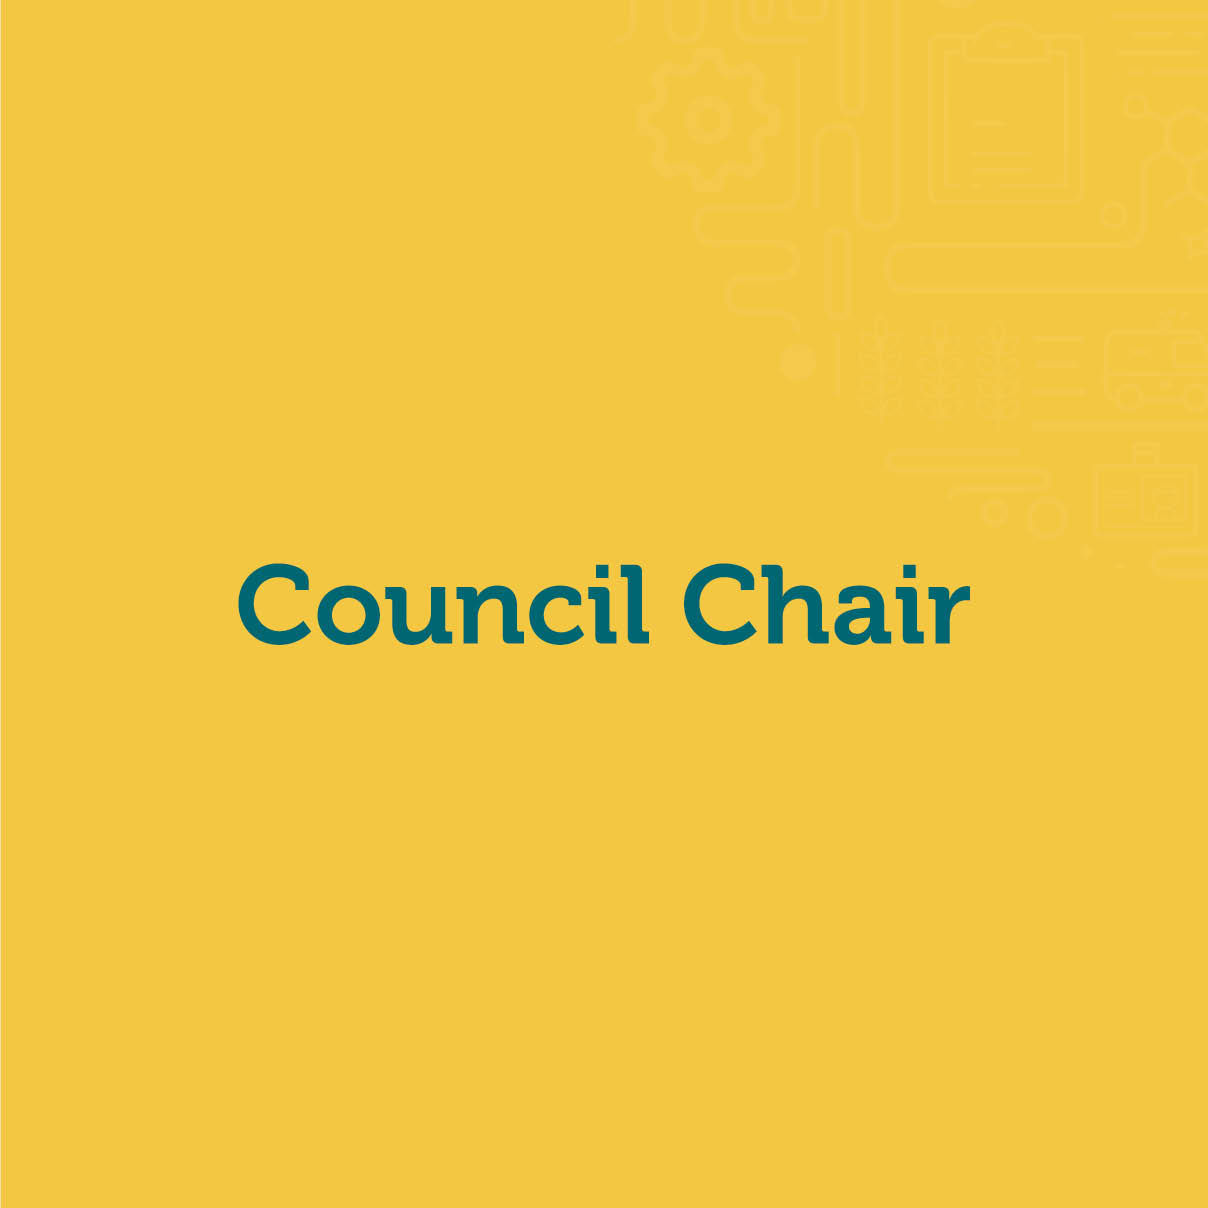 Council Chair